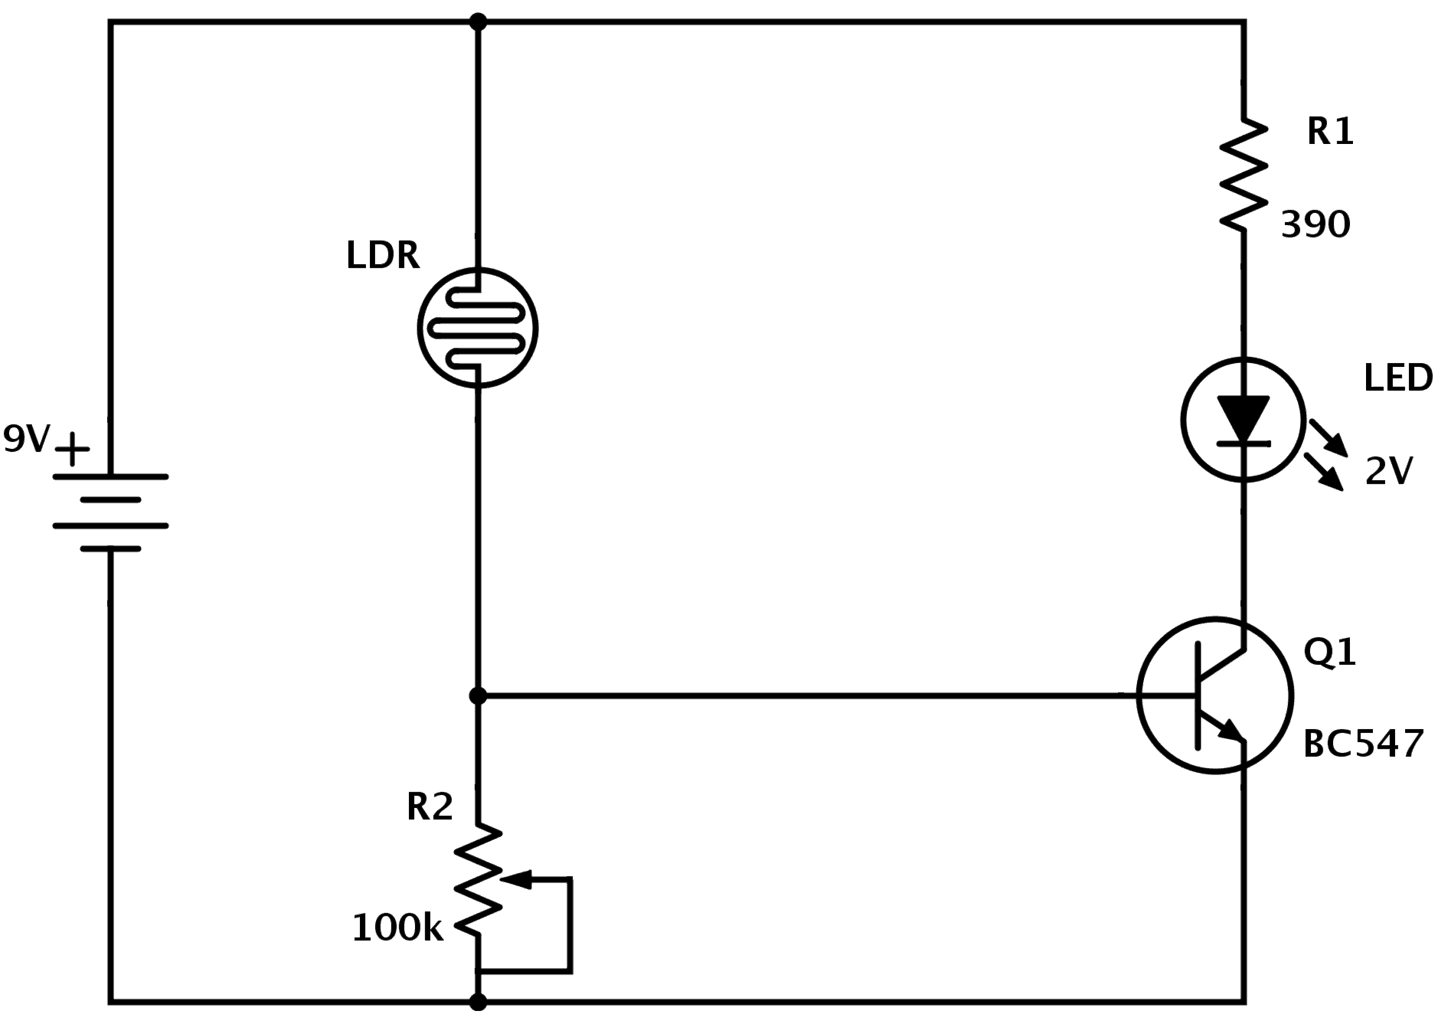 Ldr Circuit Diagram Build Electronic Circuits Pole Mounted Security Light Wiring